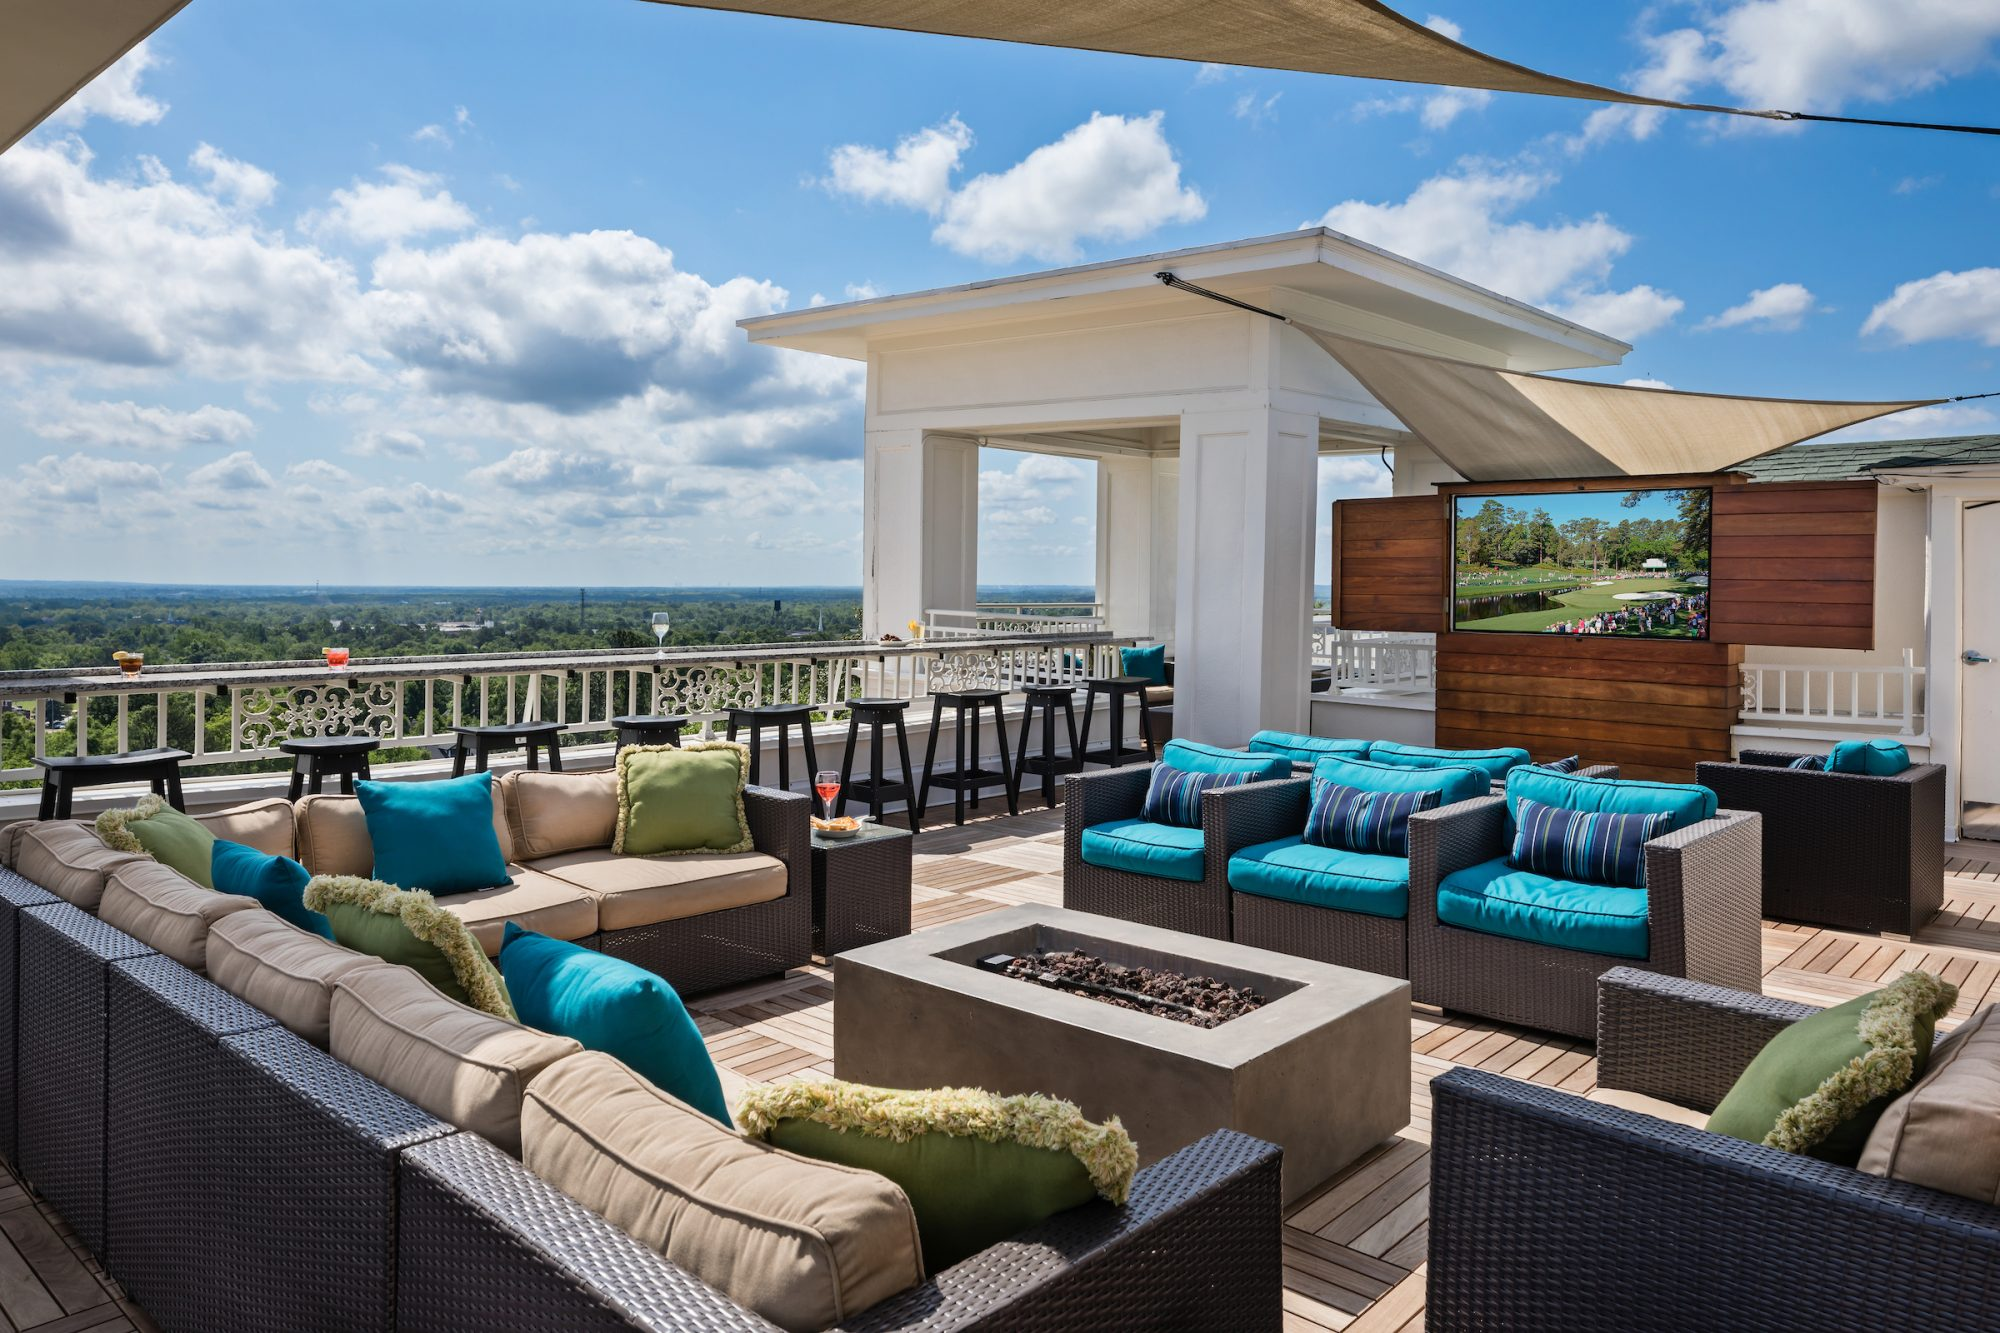 The Partridge Inn Rooftop Bar in Augusta, GA